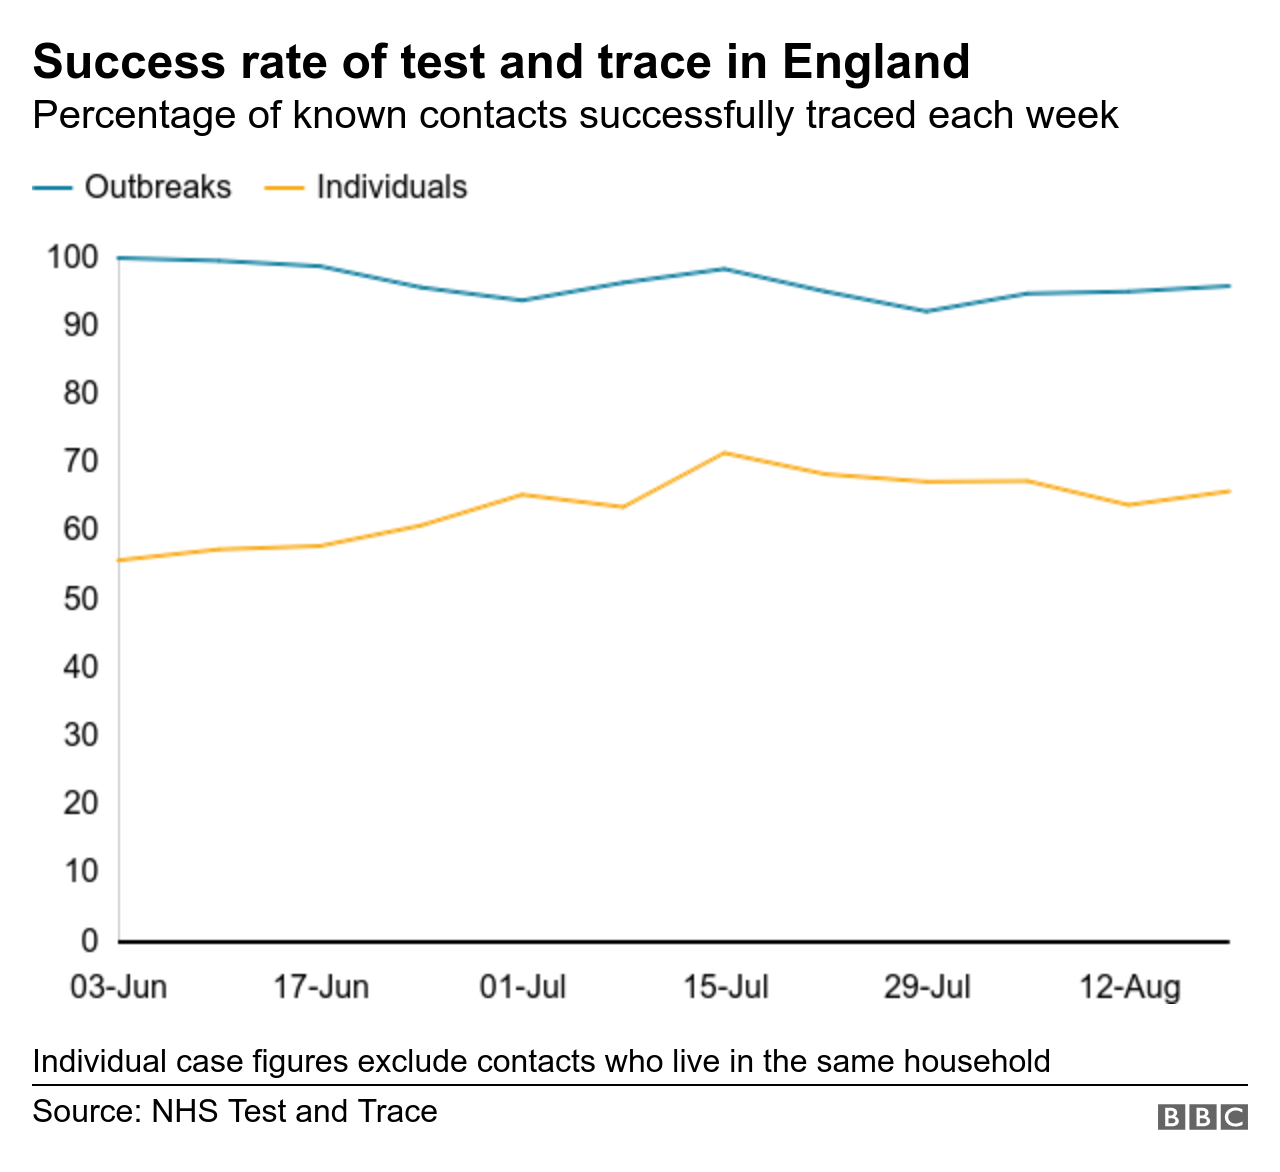 Success rate of test and trace in England - dated 28 August